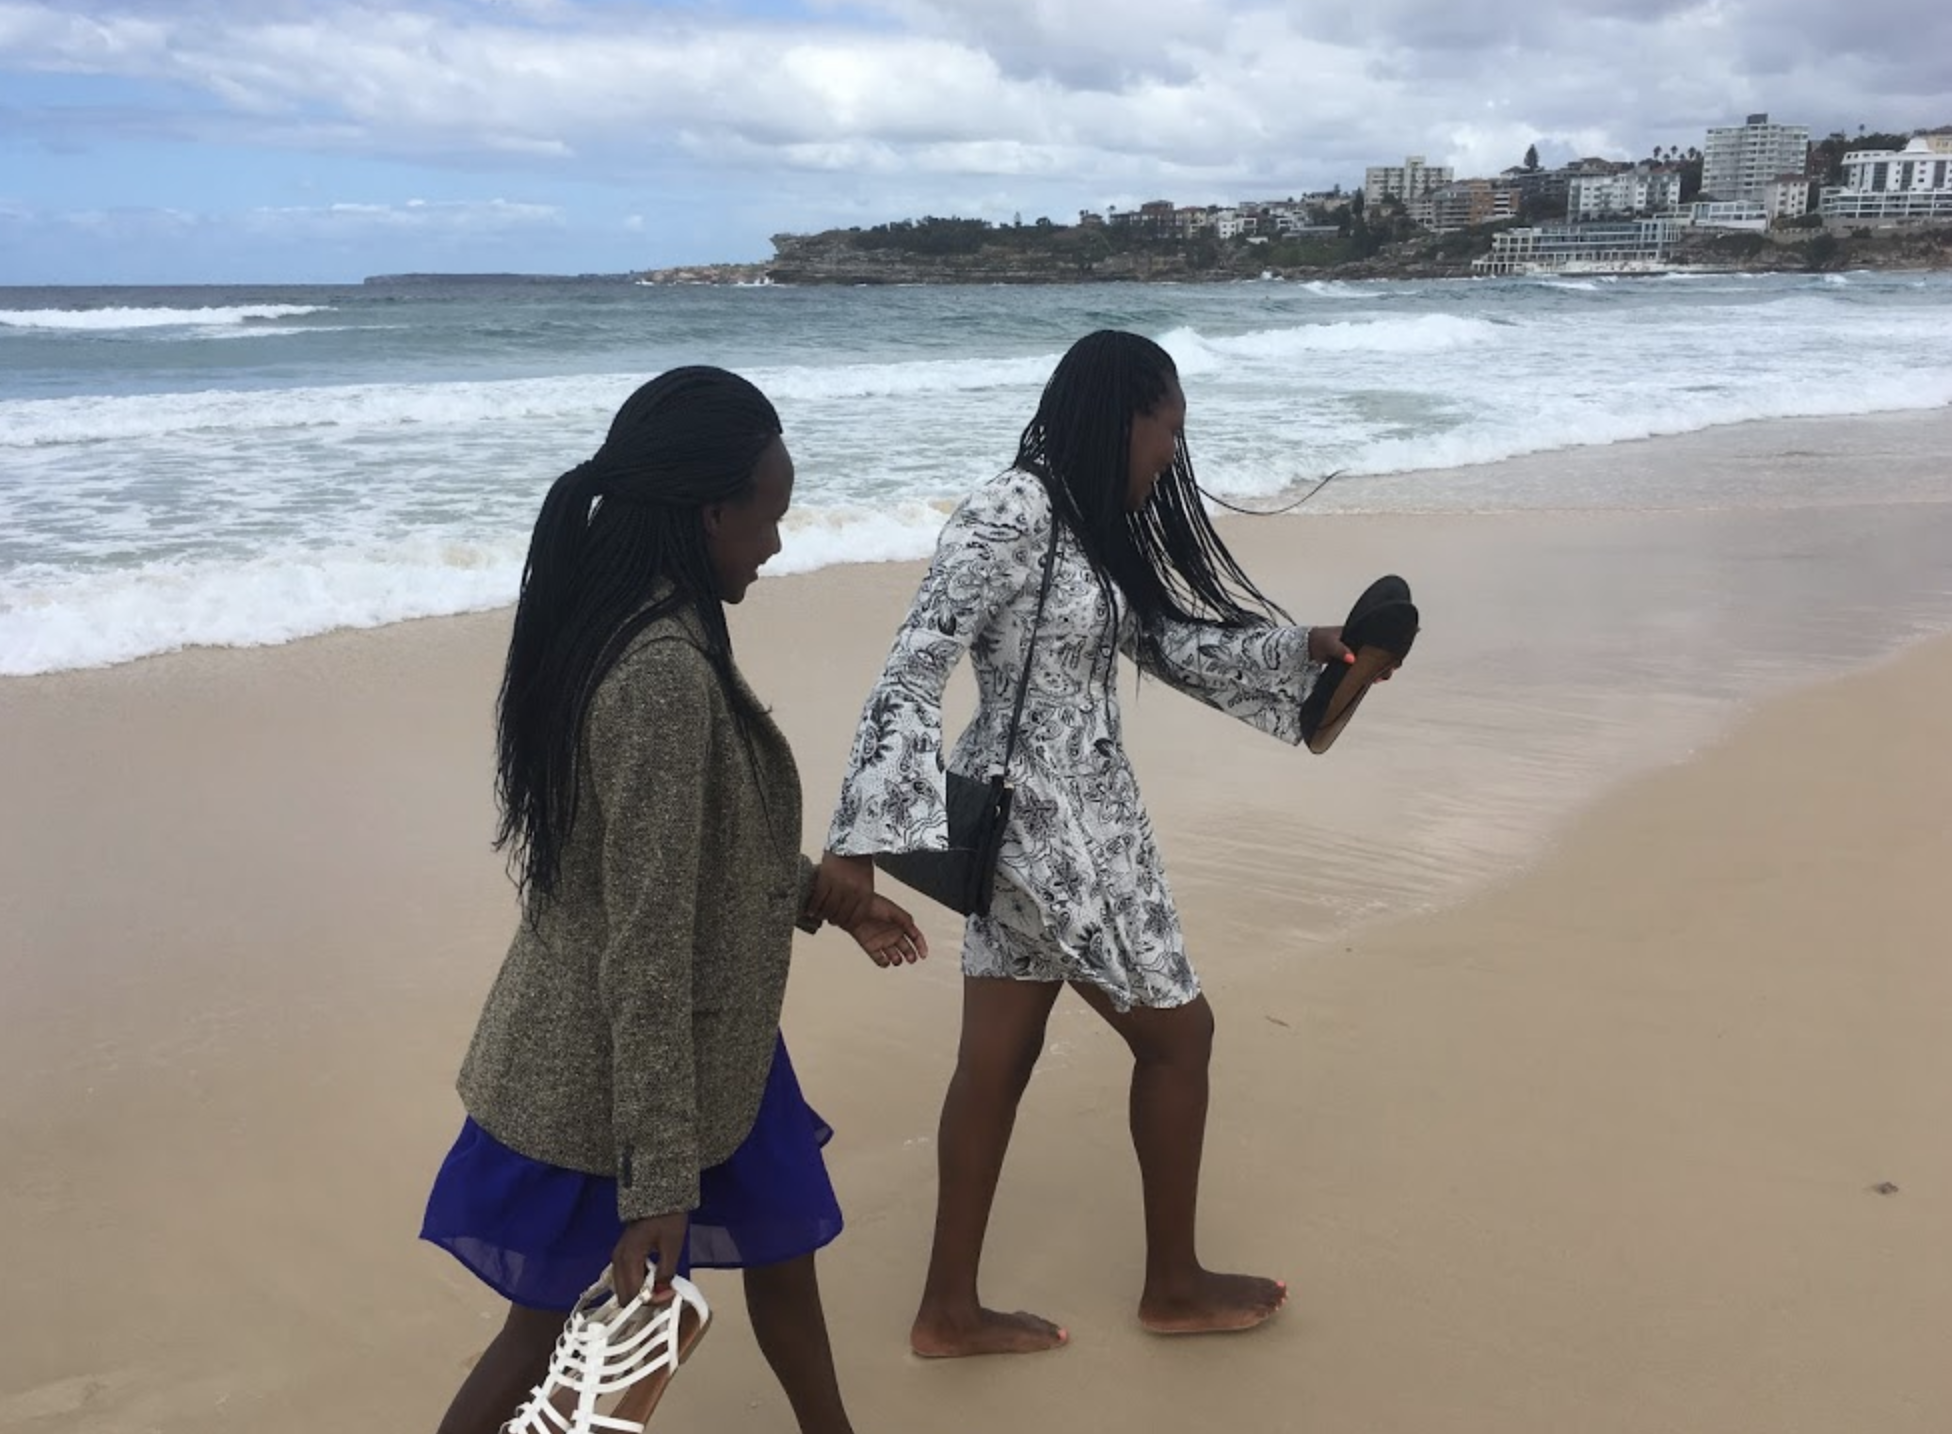 Linet and Sharon walk on the beach